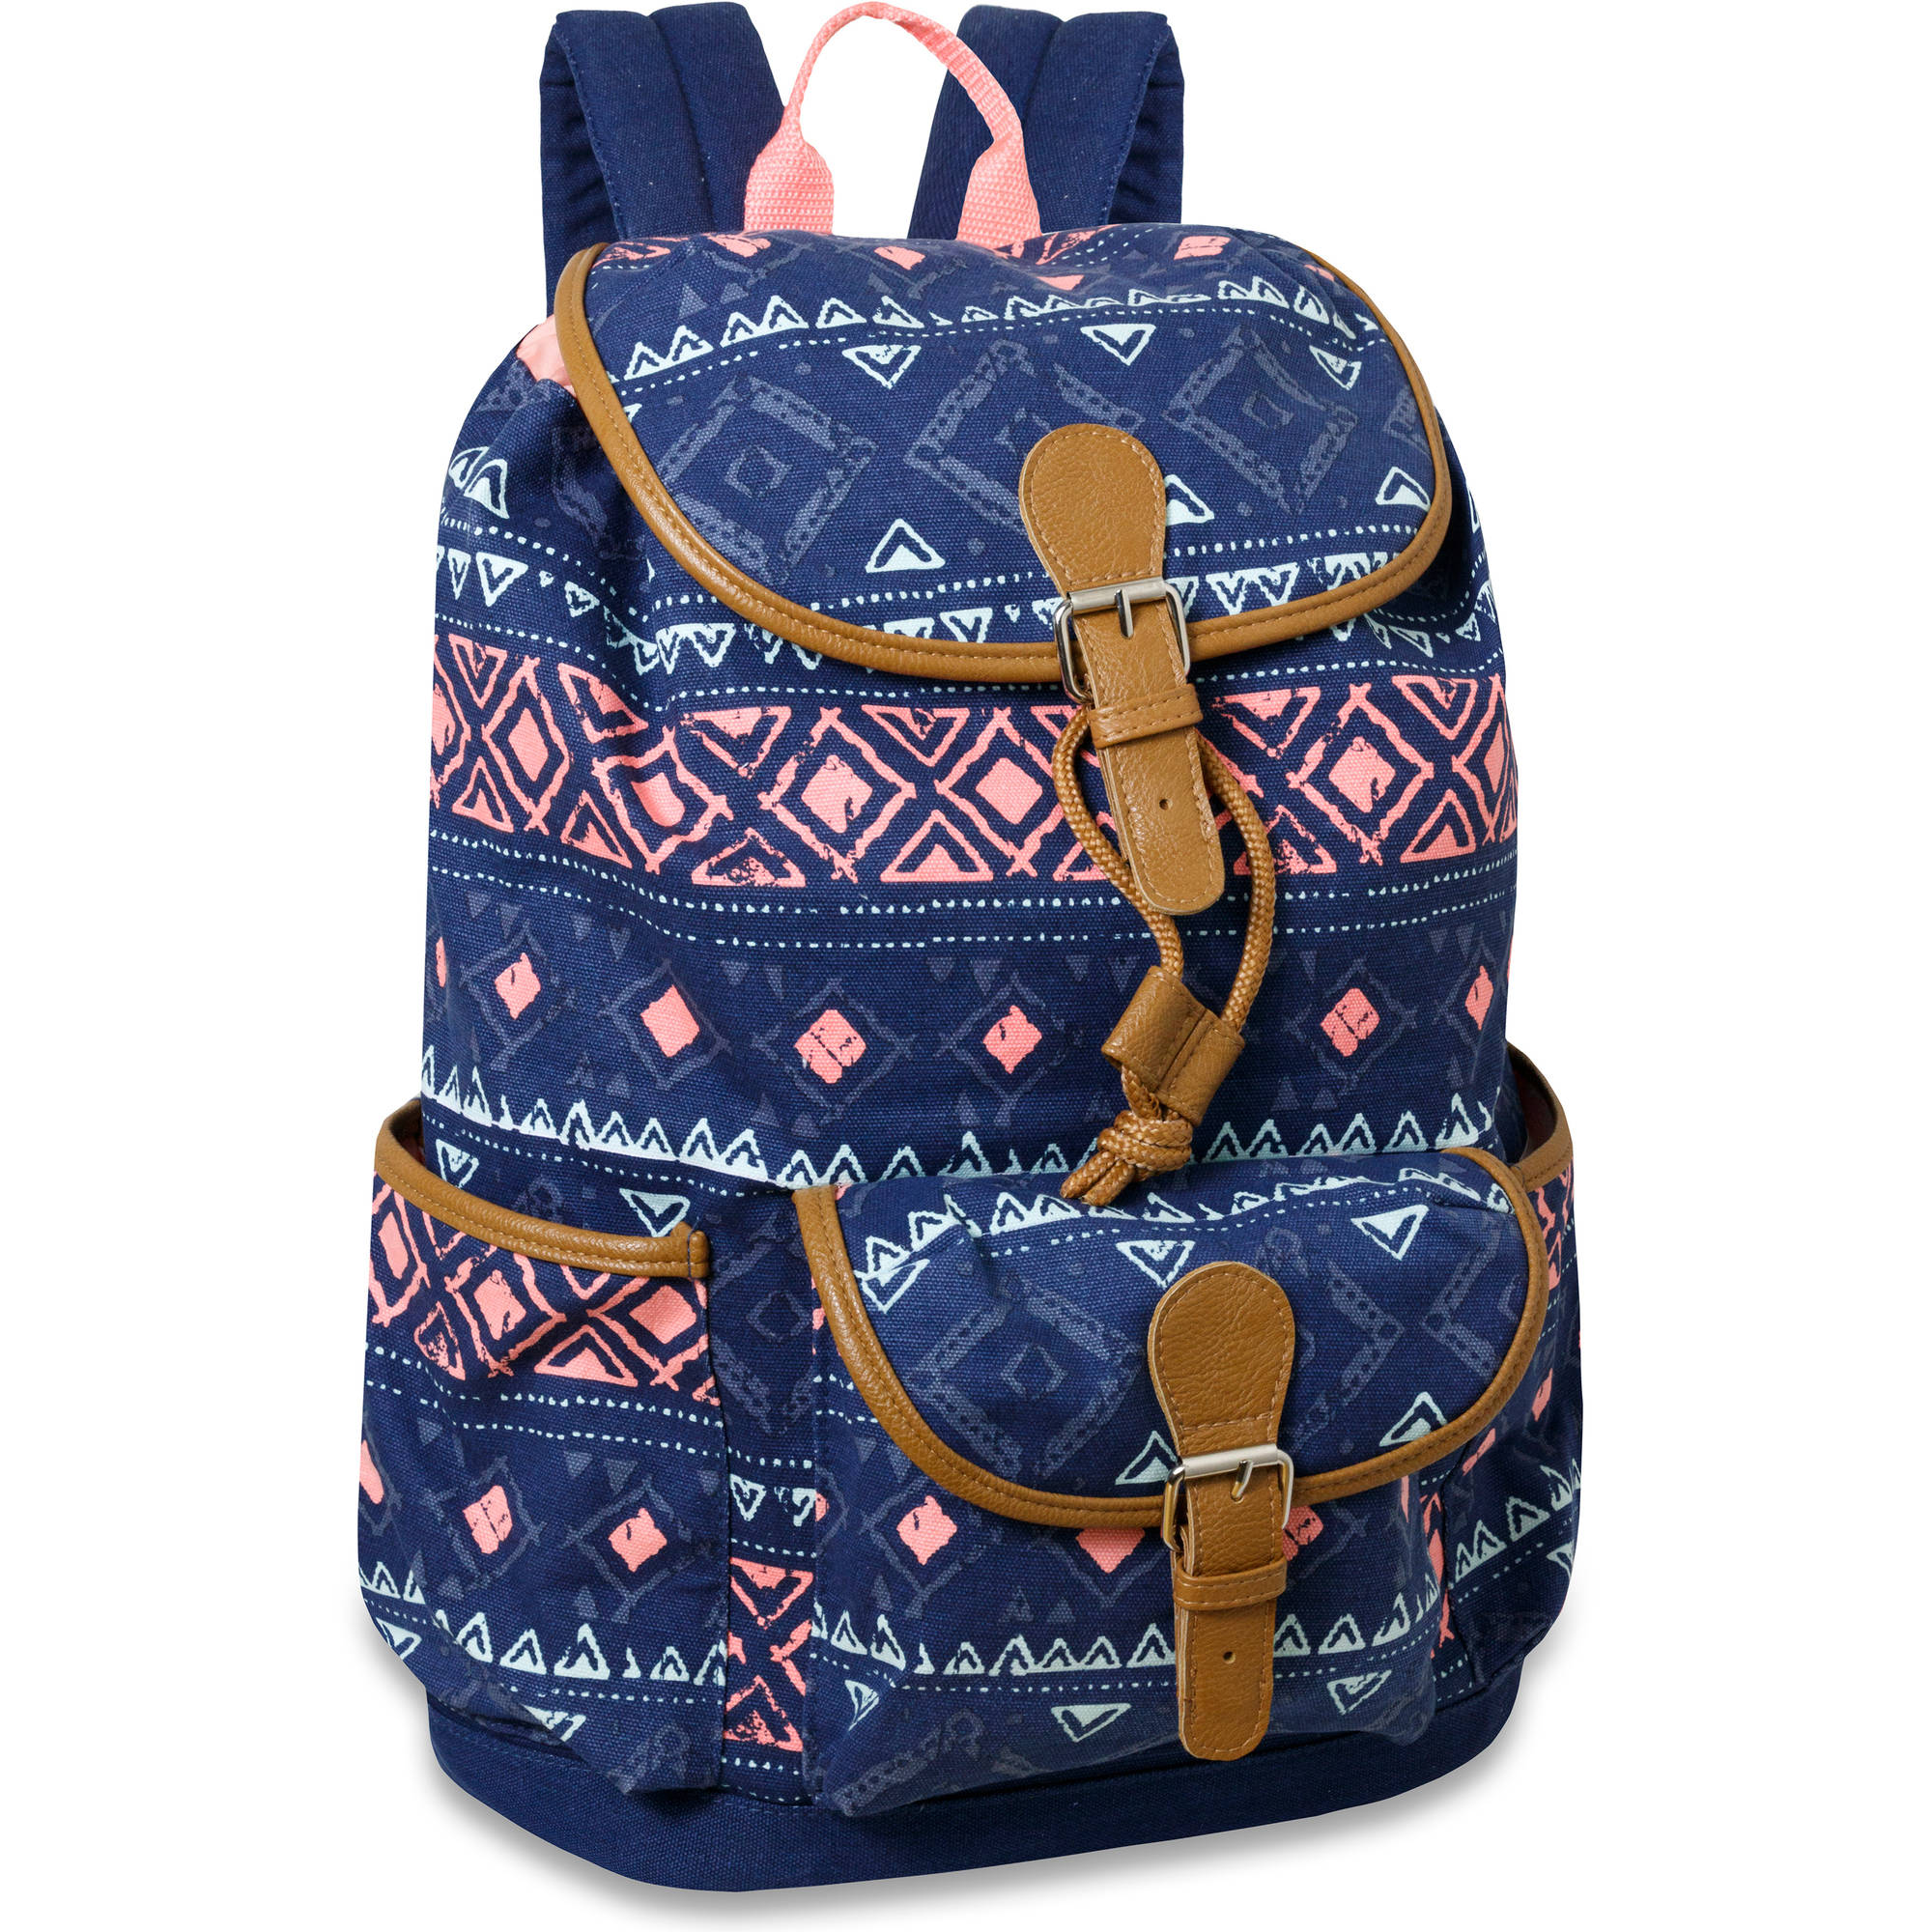 17 Inch Cotton Canvas  Triple Pocket Drawstring Flap Backpack